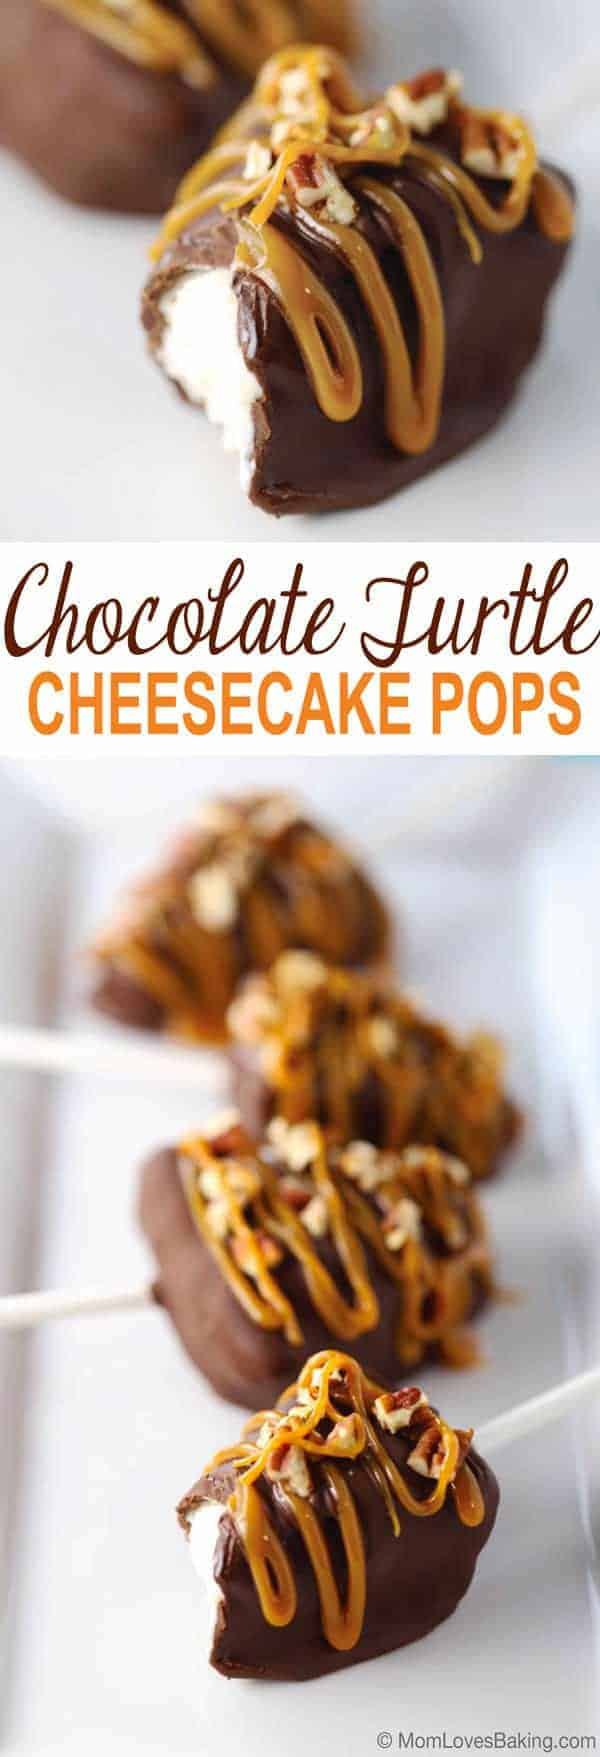 Chocolate Turtle Cheesecake Pops